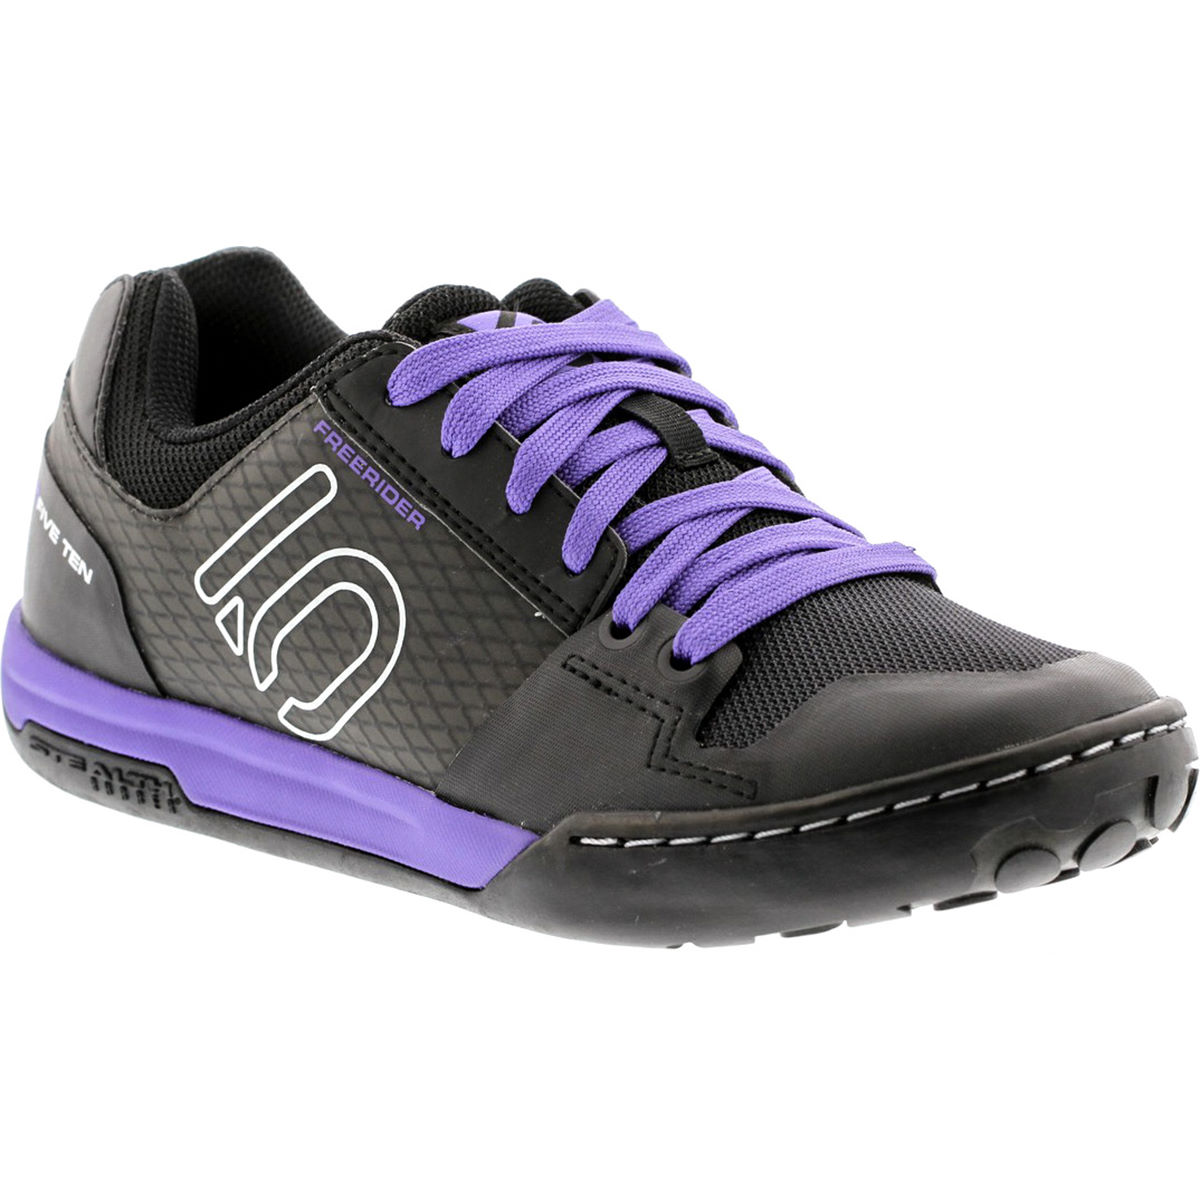 Chaussures VTT Femme Five Ten Freerider Contact - EU 39 Split Purple